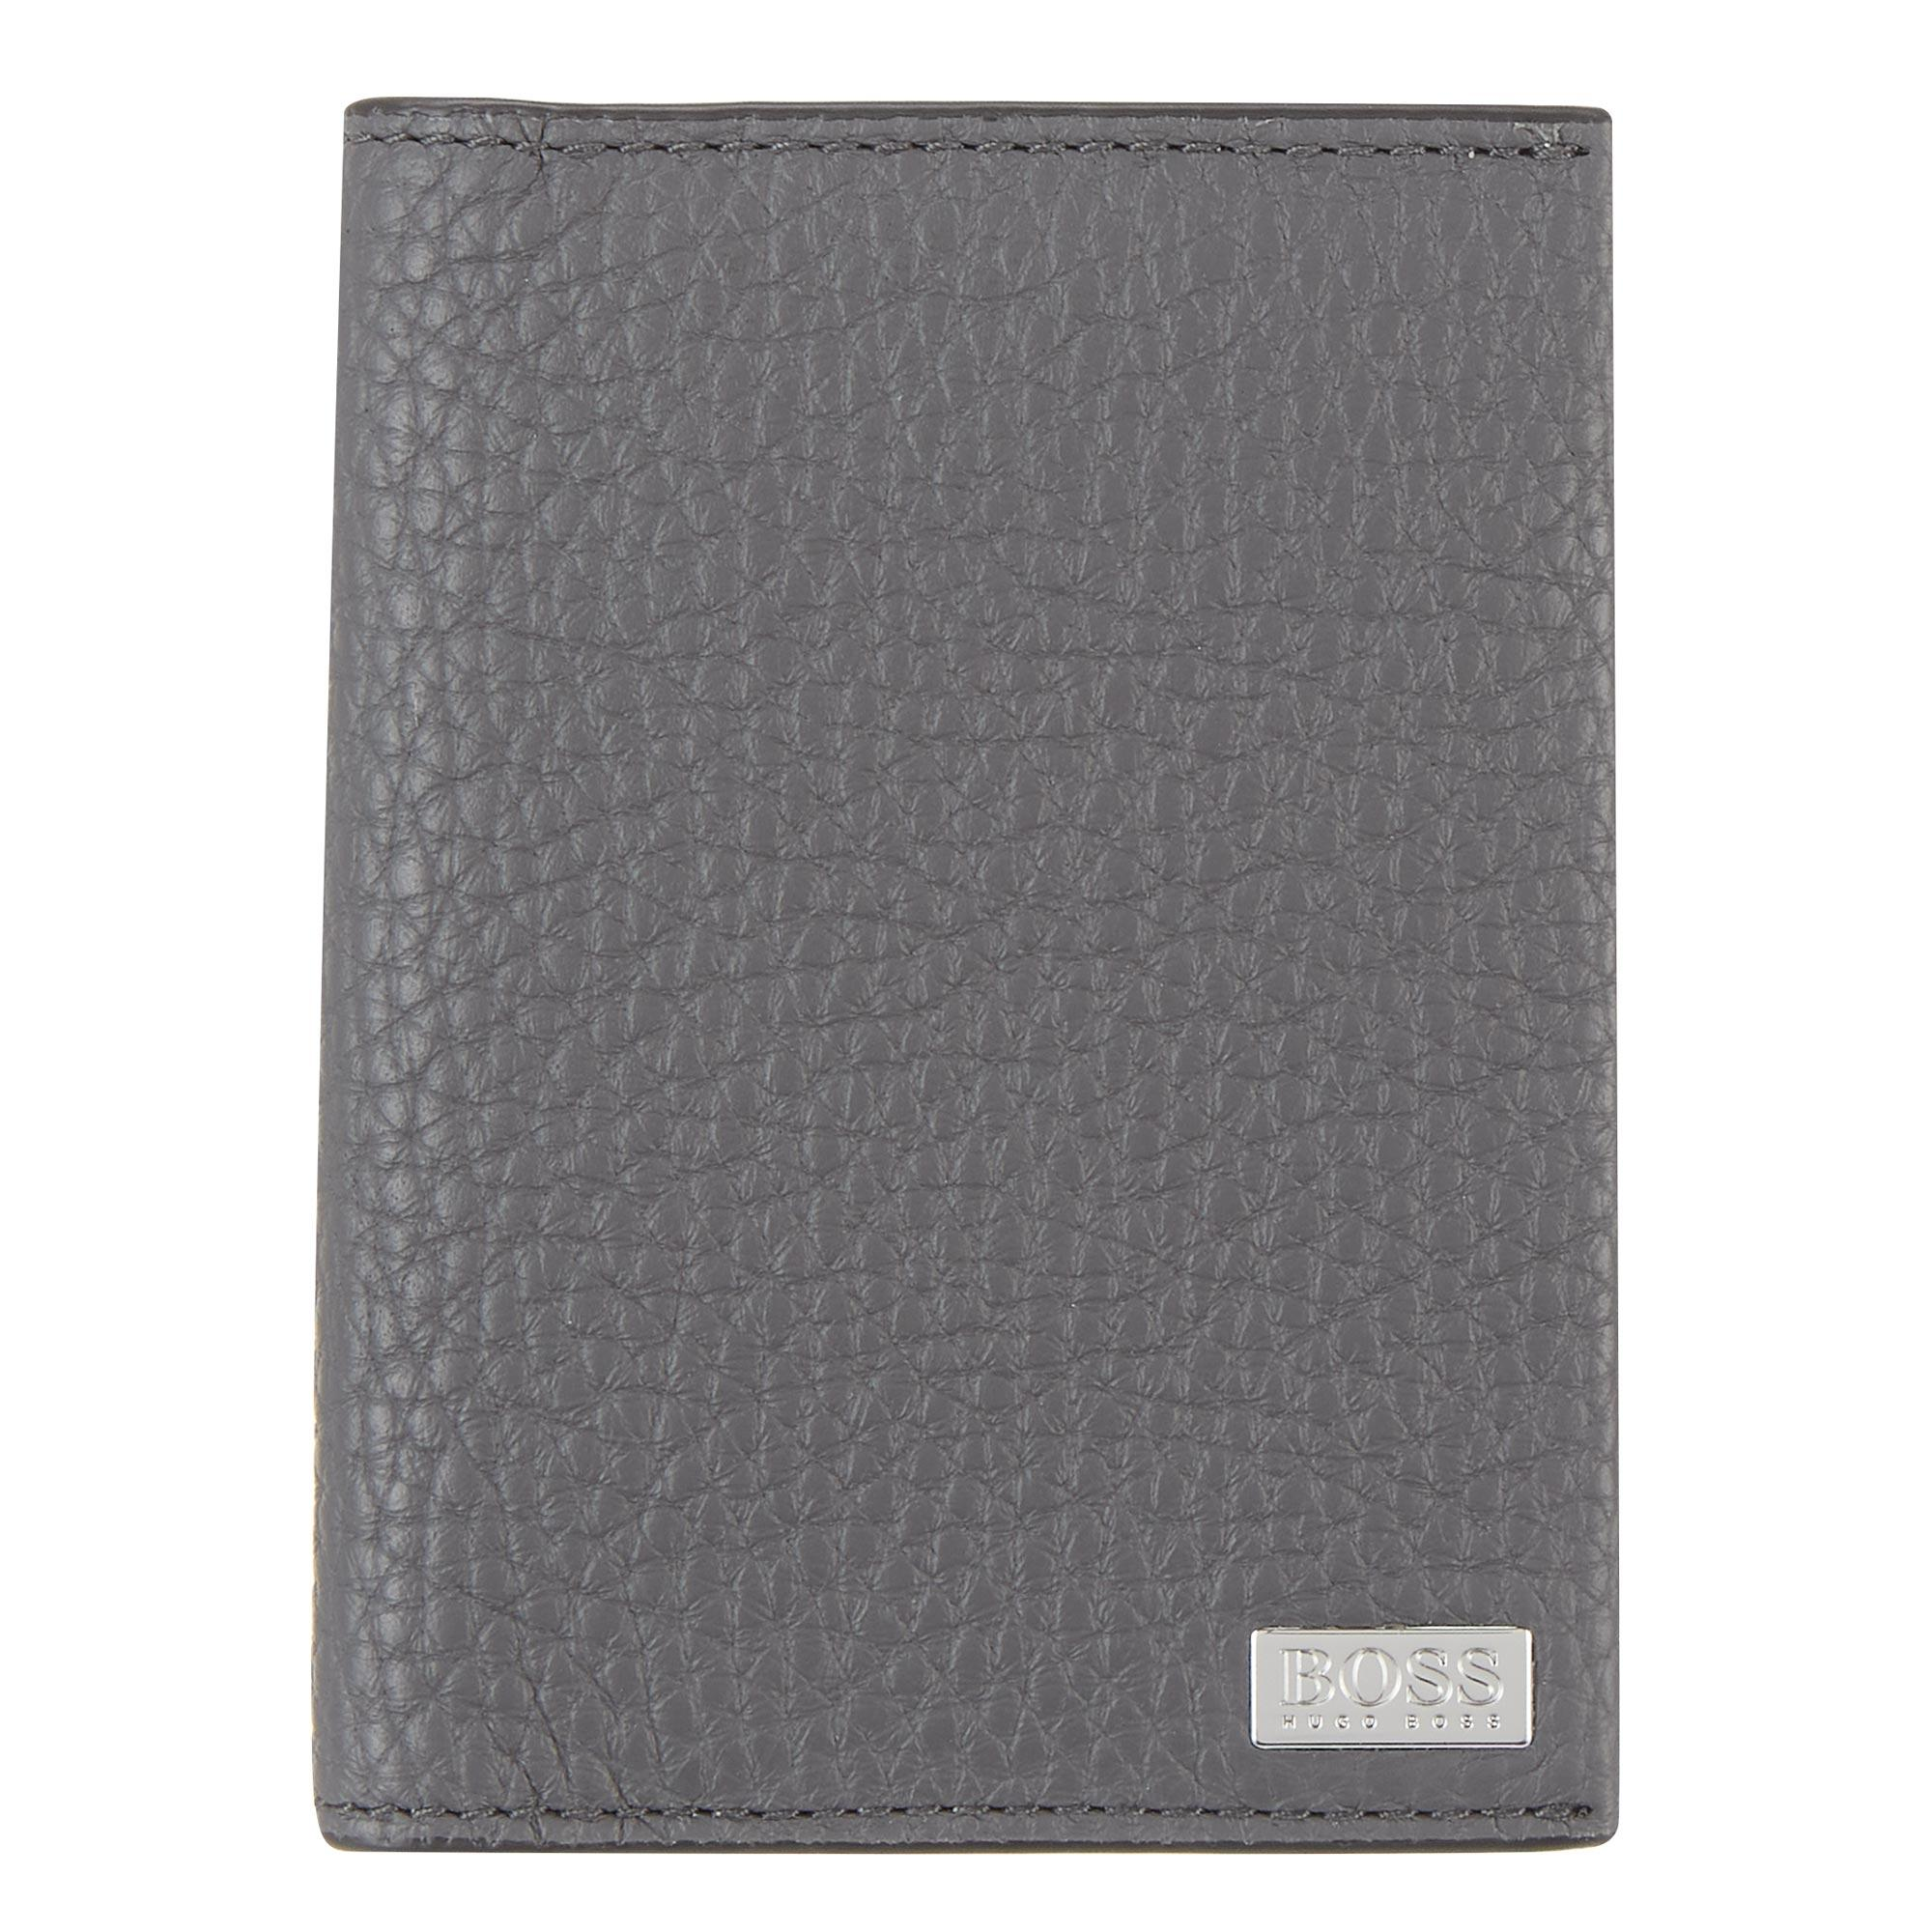 Crosstown Leather Bifiold Card Holder